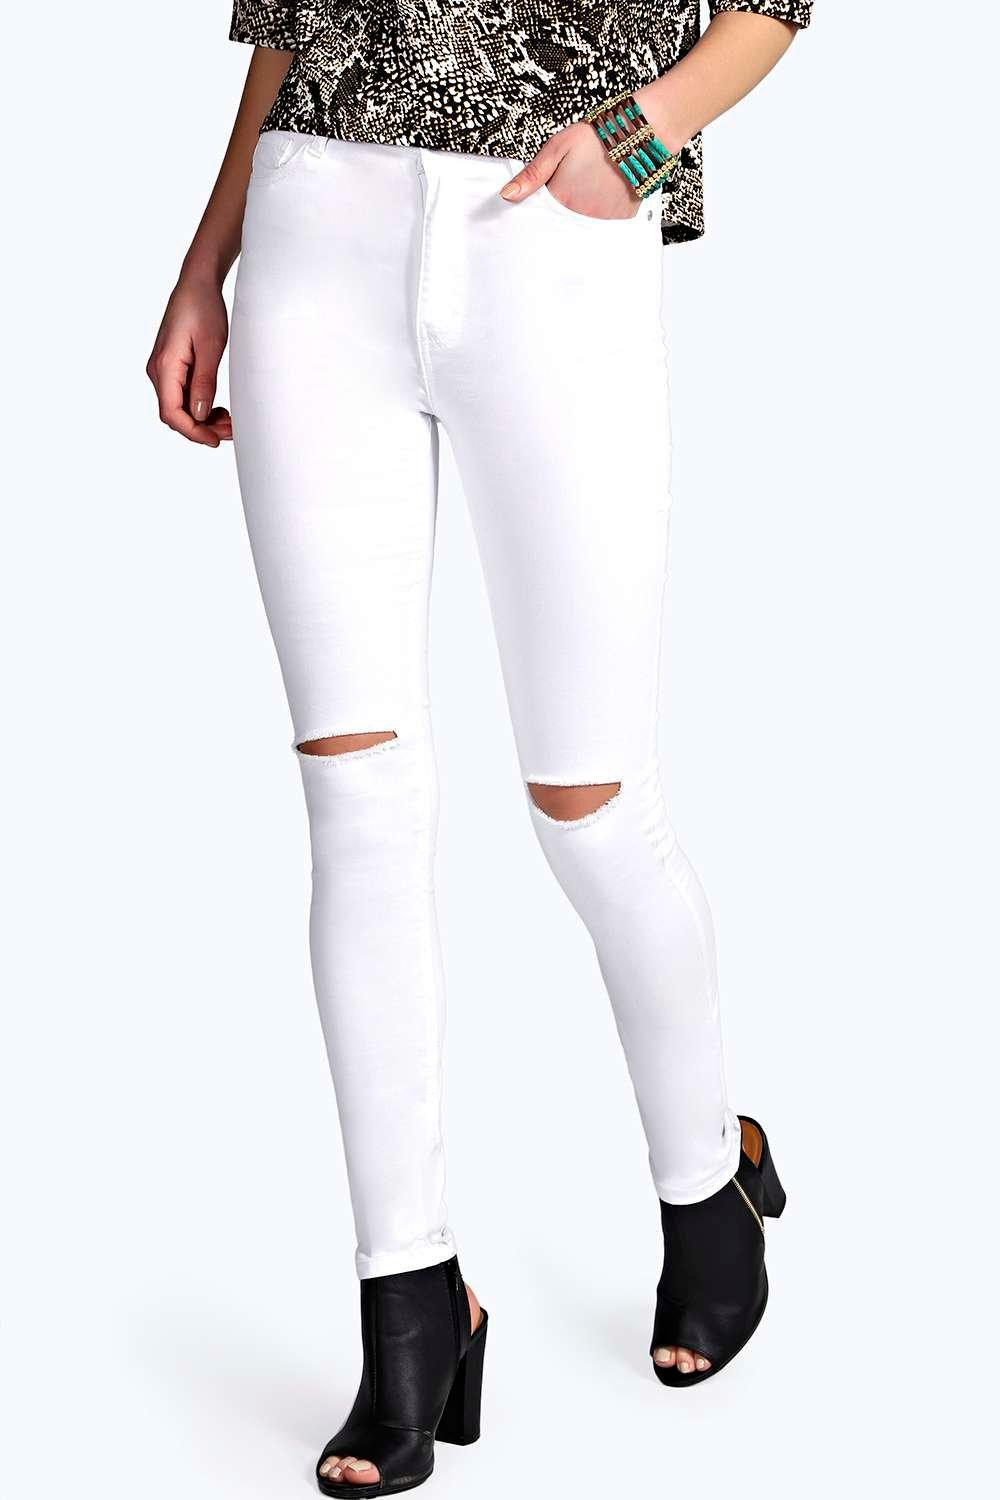 Lara High Rise Ripped Knee Super Skinny Jeans at boohoo.com